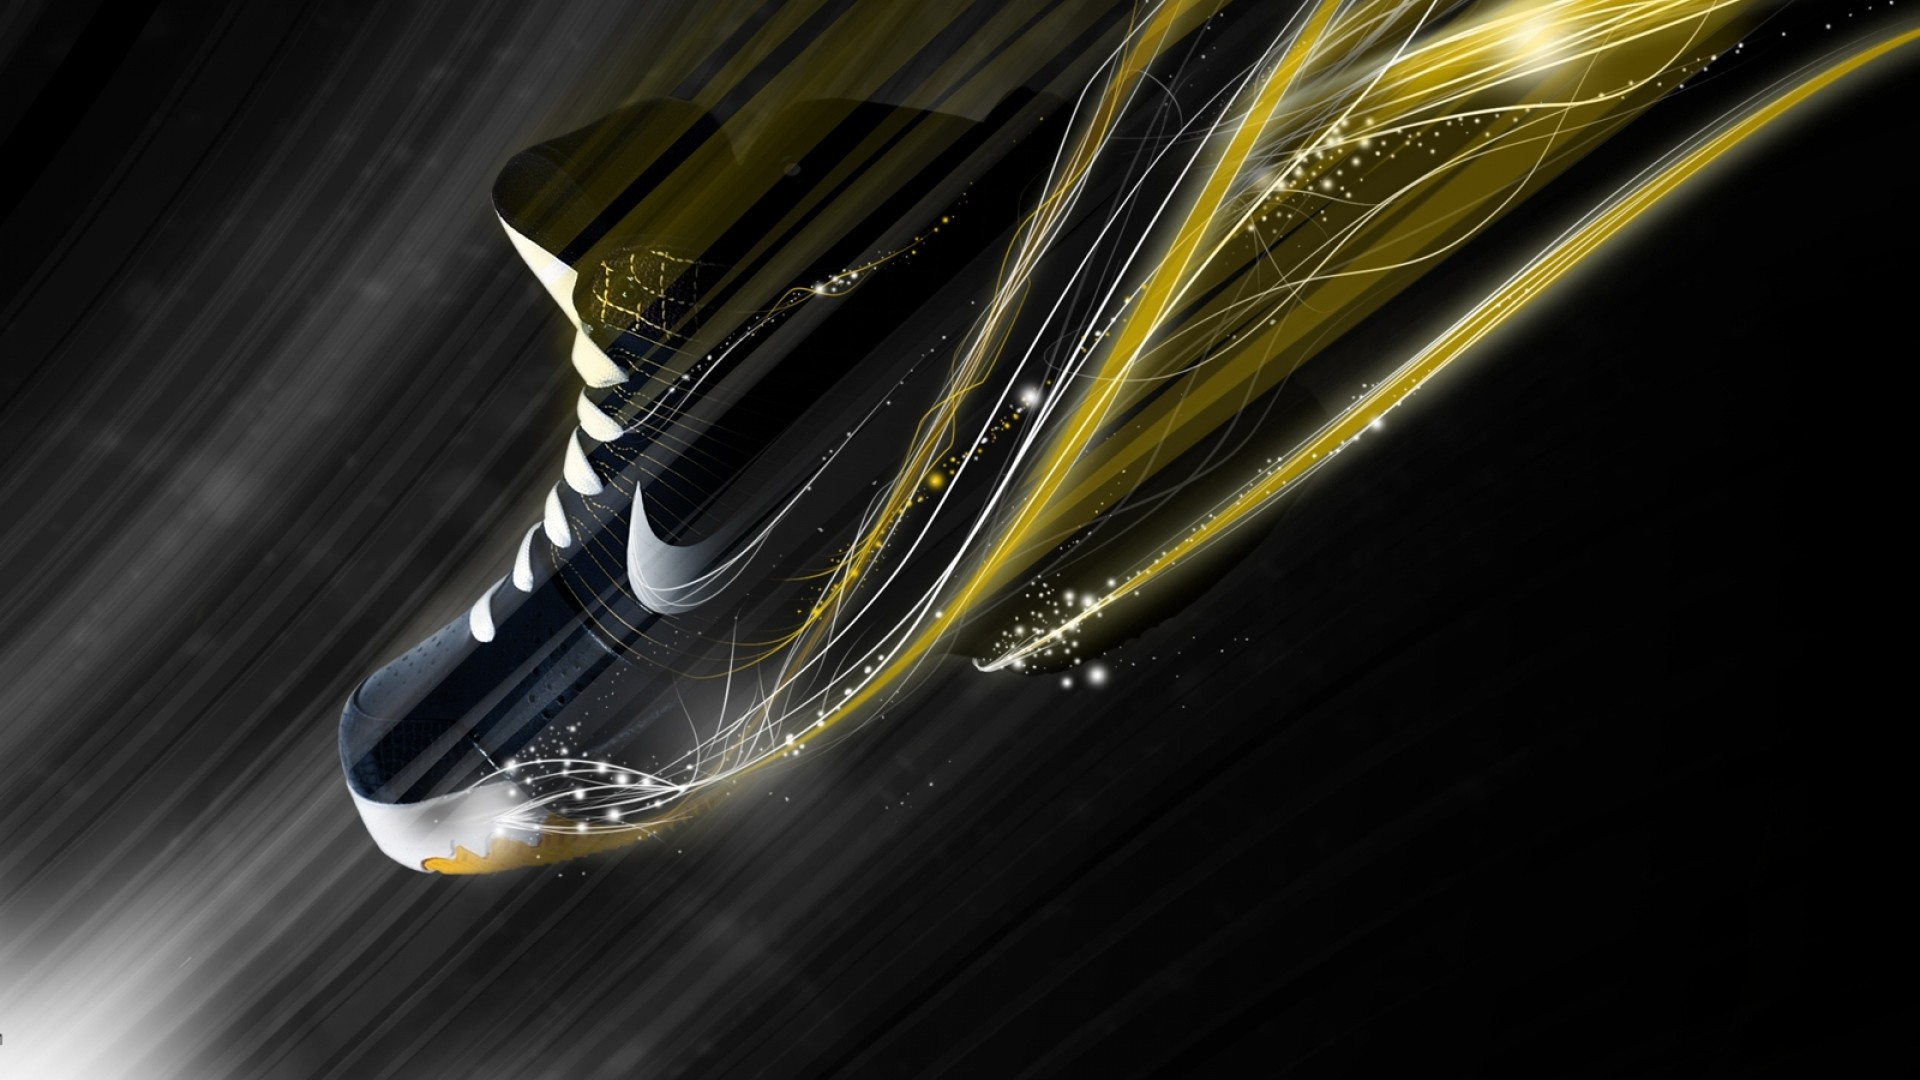 online store aef1a 39615 885074-nike-best-wallpapers-1920x1080-for-tablet.jpg